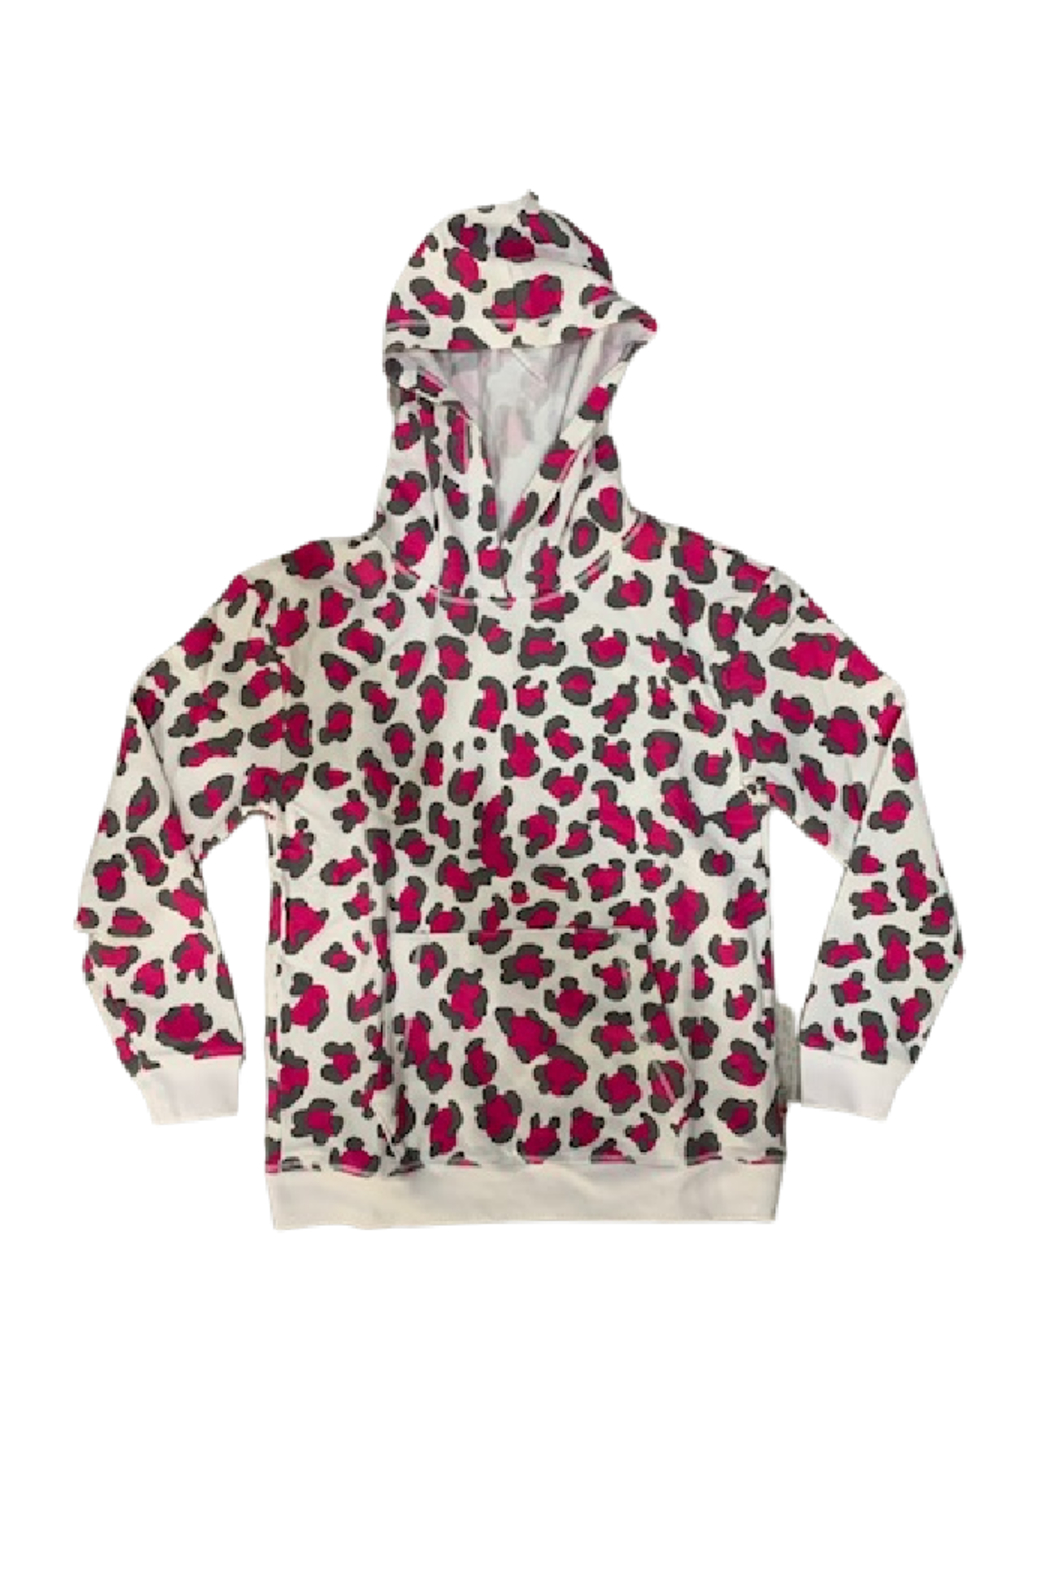 T2 Love Cheetah Girl Hooded Pullover - Main Image